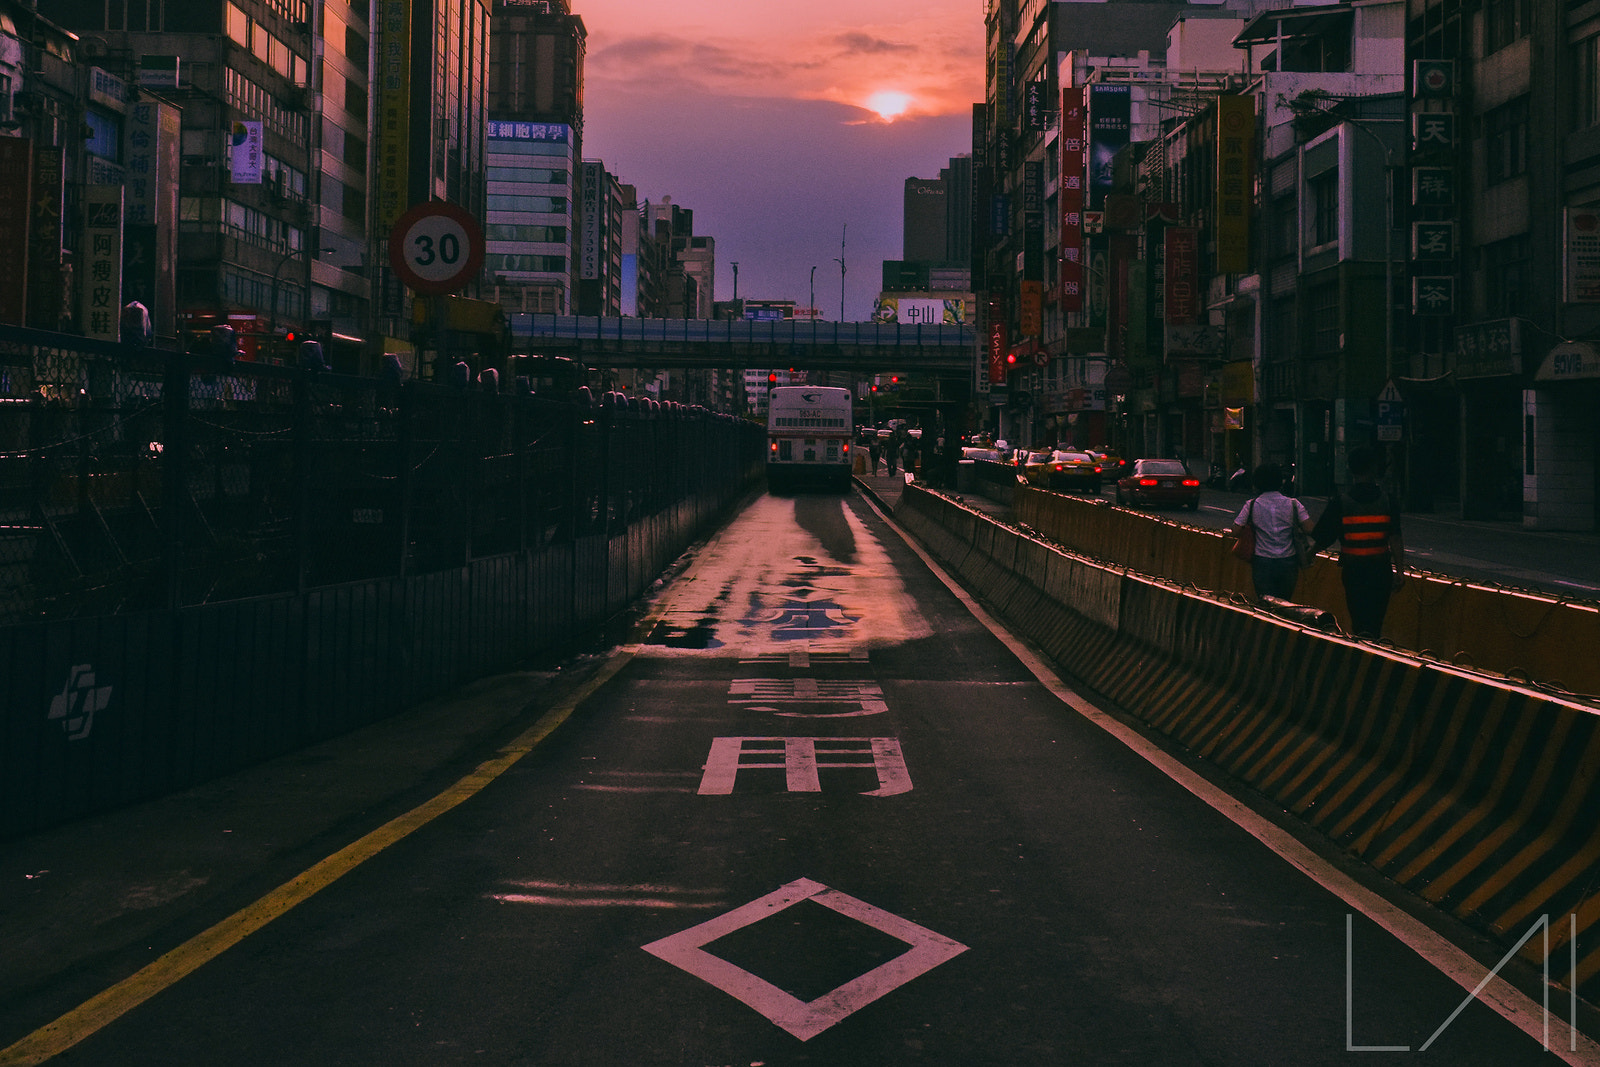 Photograph Sunset? Sunrise? Bus Lane. by Atmosphere Light on 500px